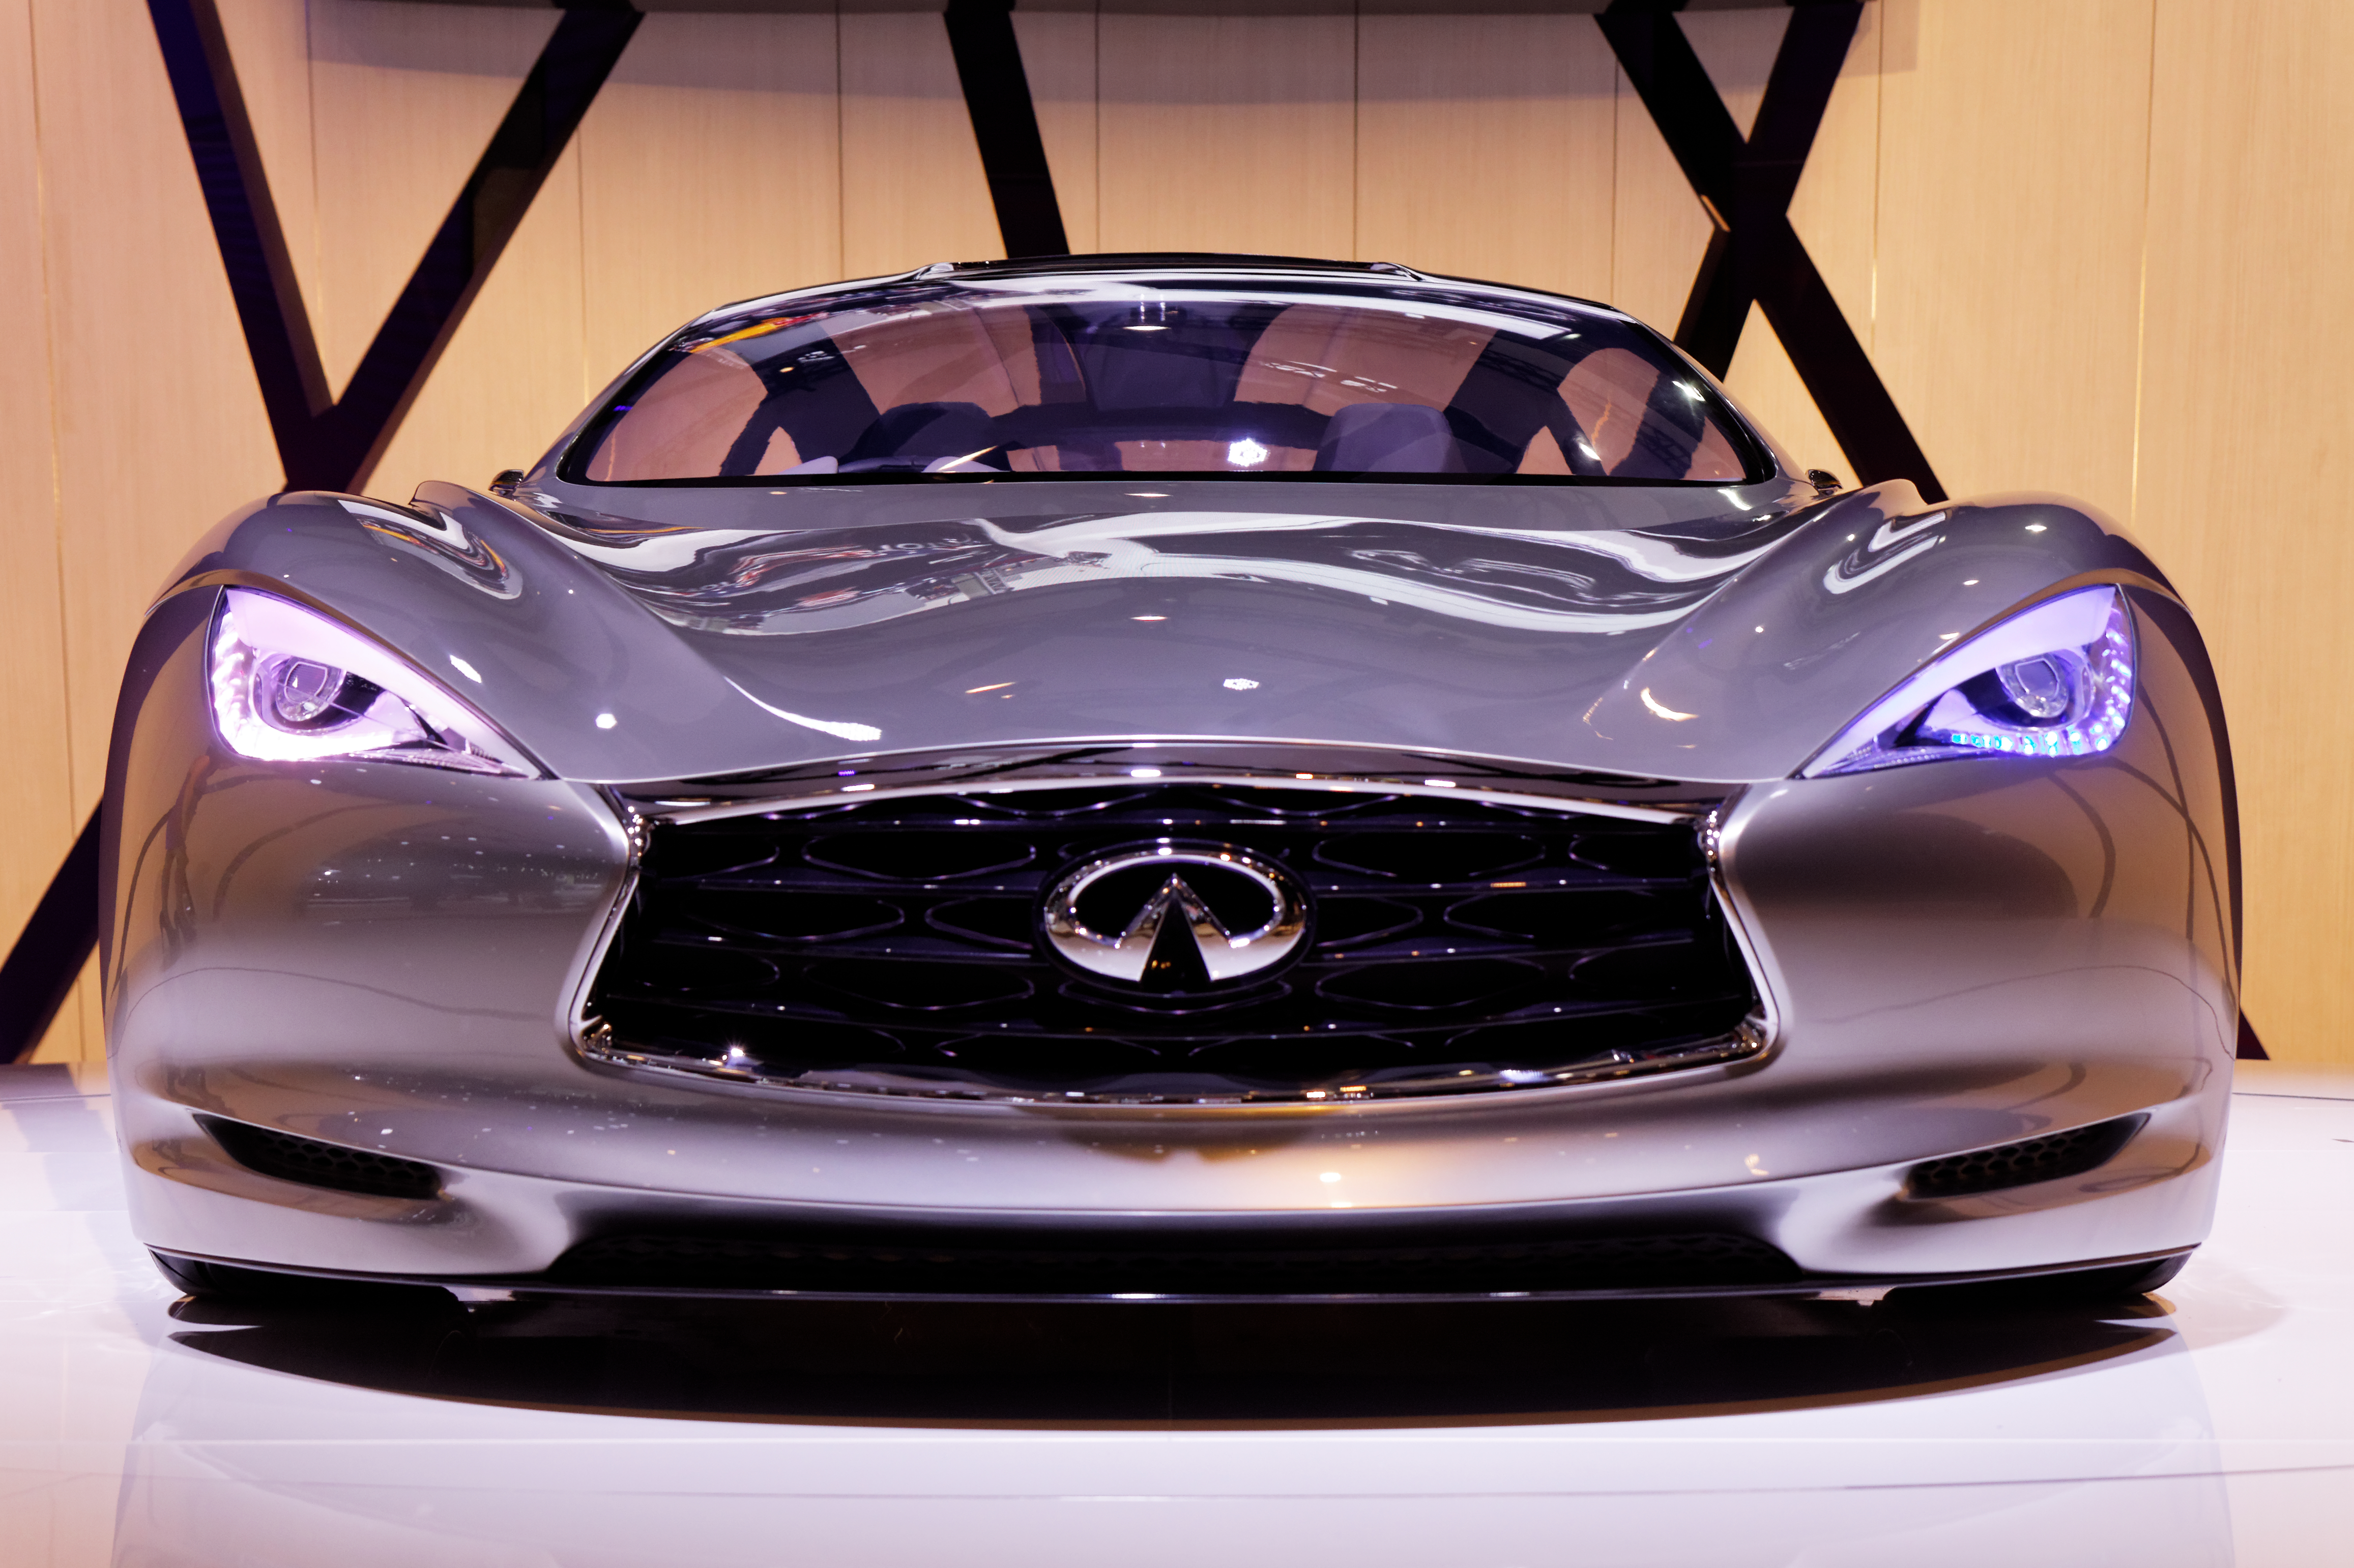 cars step wire forward you s system a hires q automobile is new love steering by steer infinity big unless infiniti